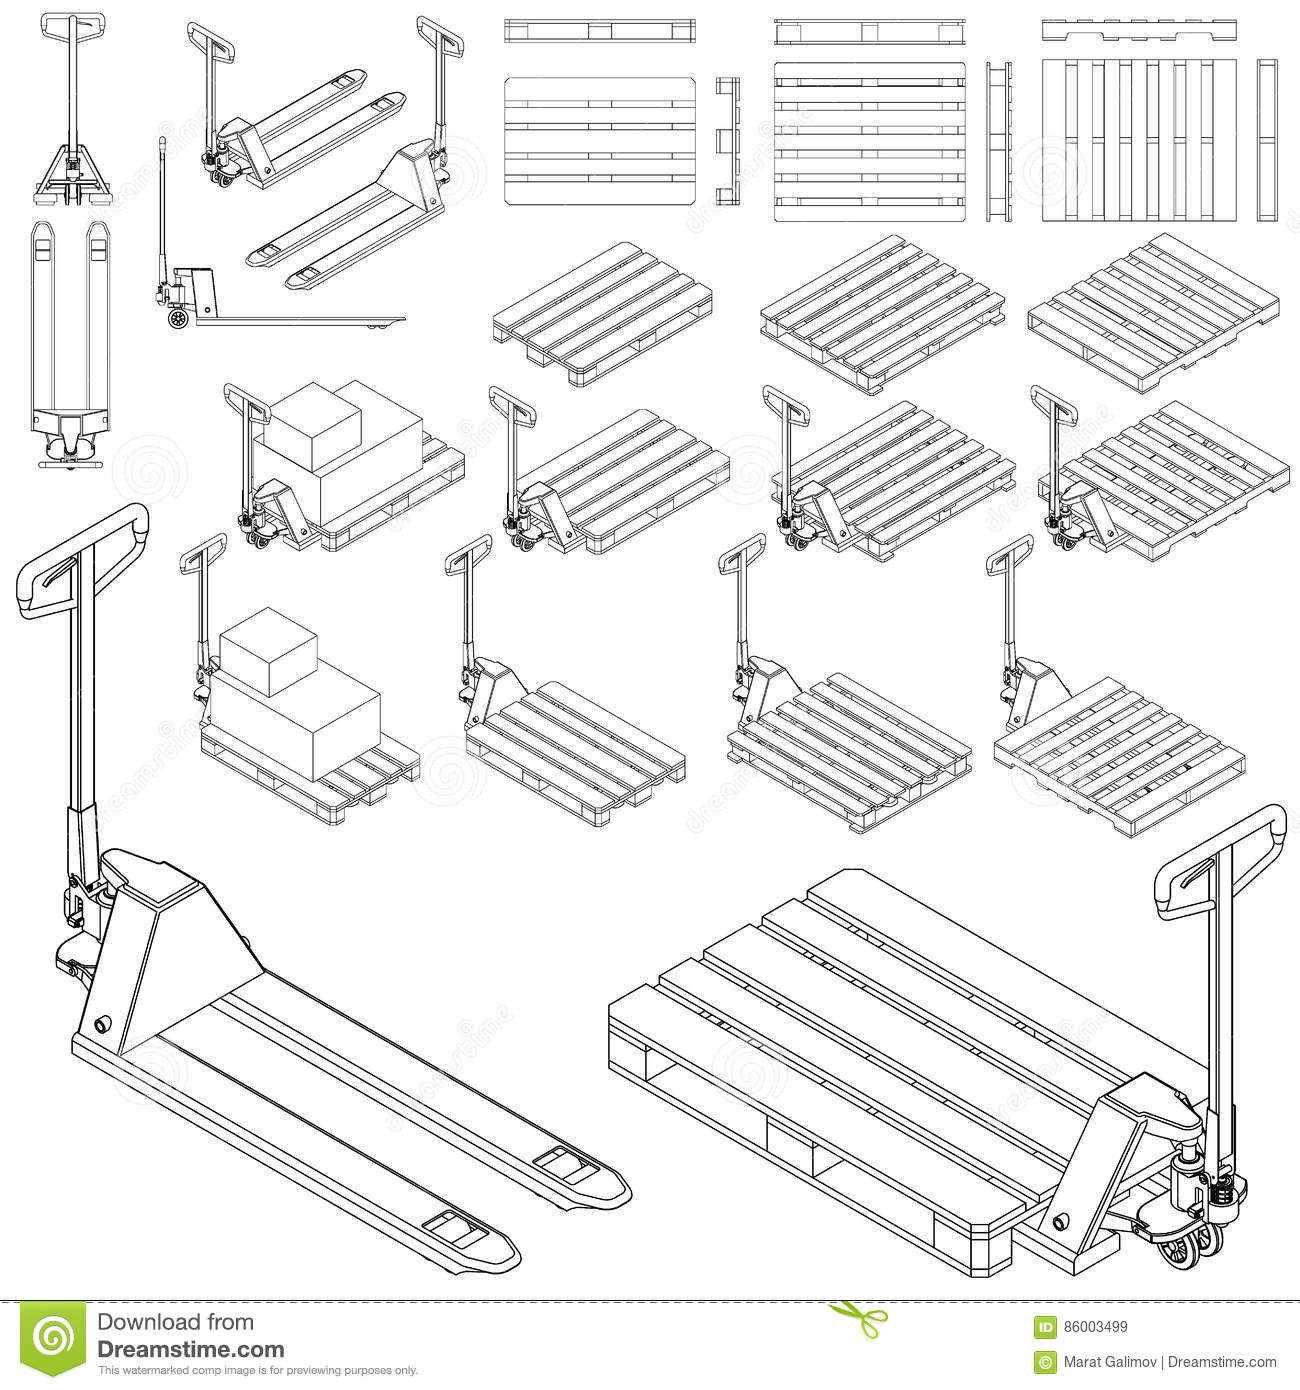 Hand Fork Lift Truck And Pallet Isometric Outline Drawing